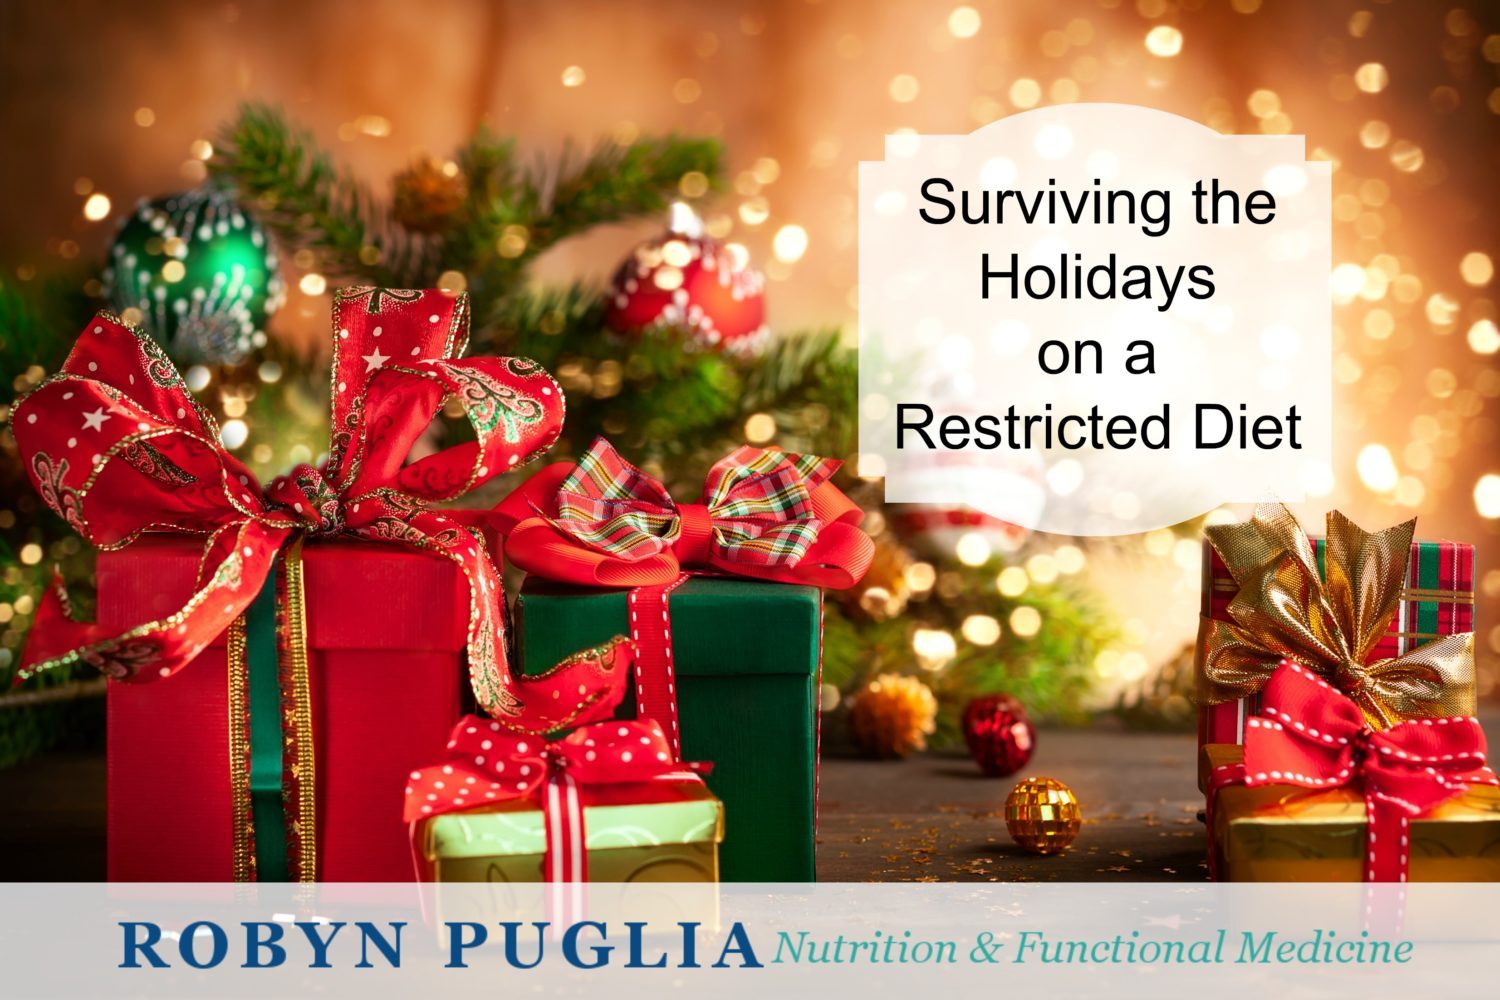 Surviving the holidays on a restricted diet